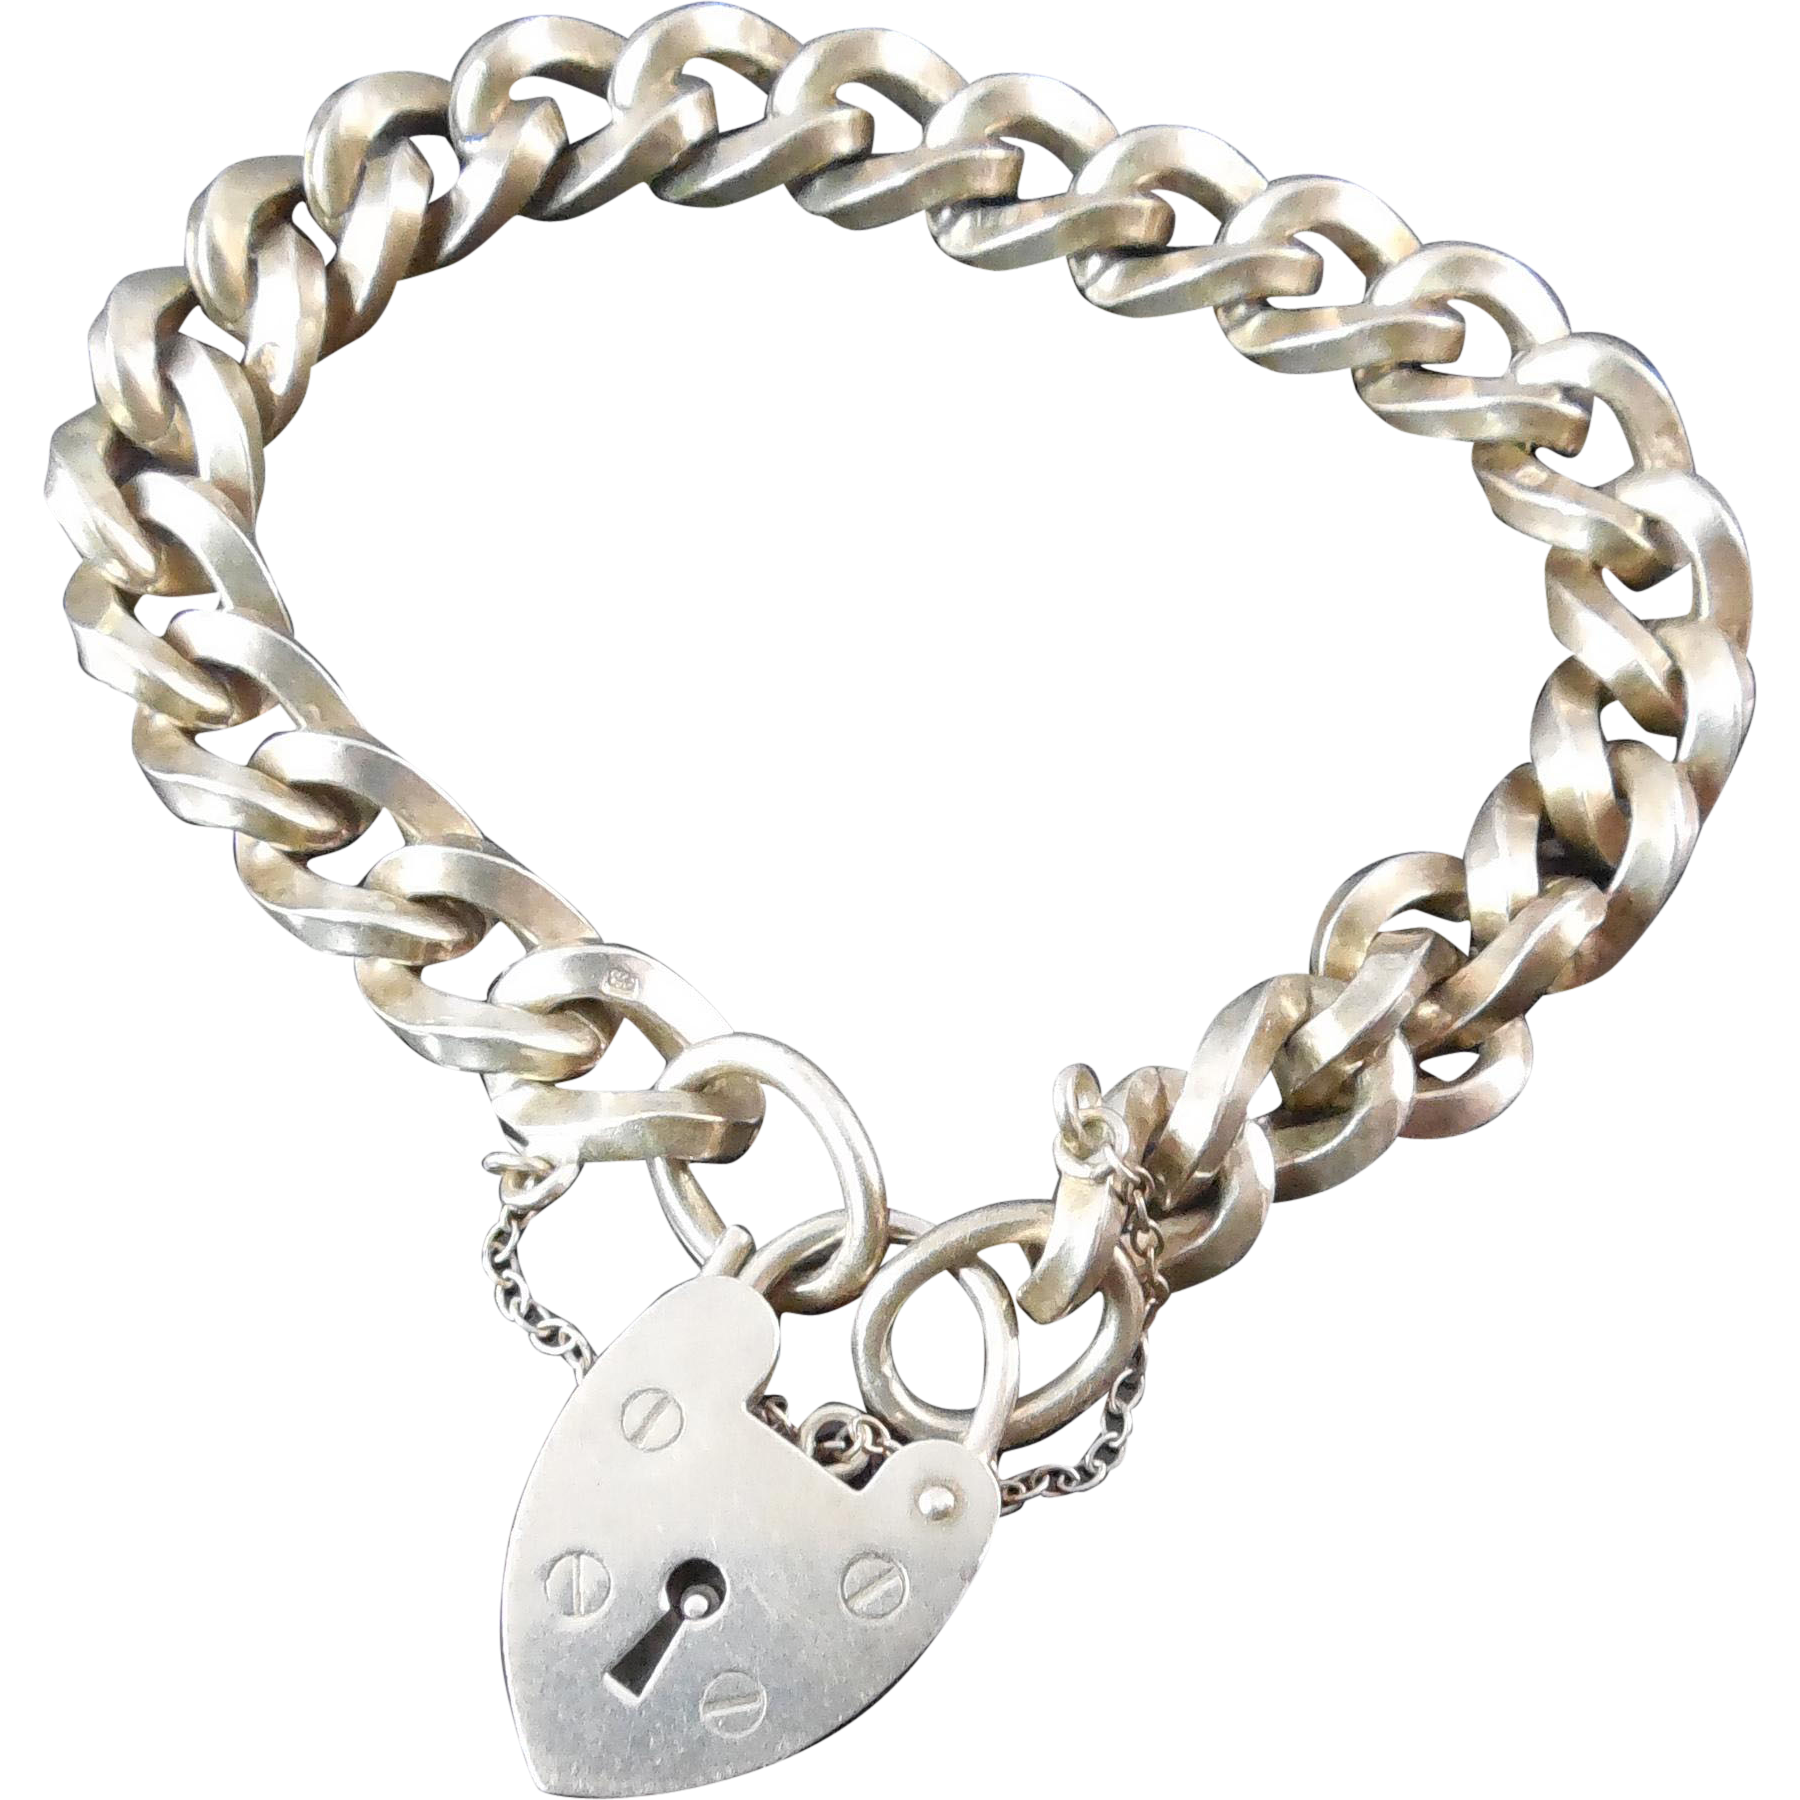 Sterling Silver Bracelet With Padlock and Safety Chain - London England Signed LC